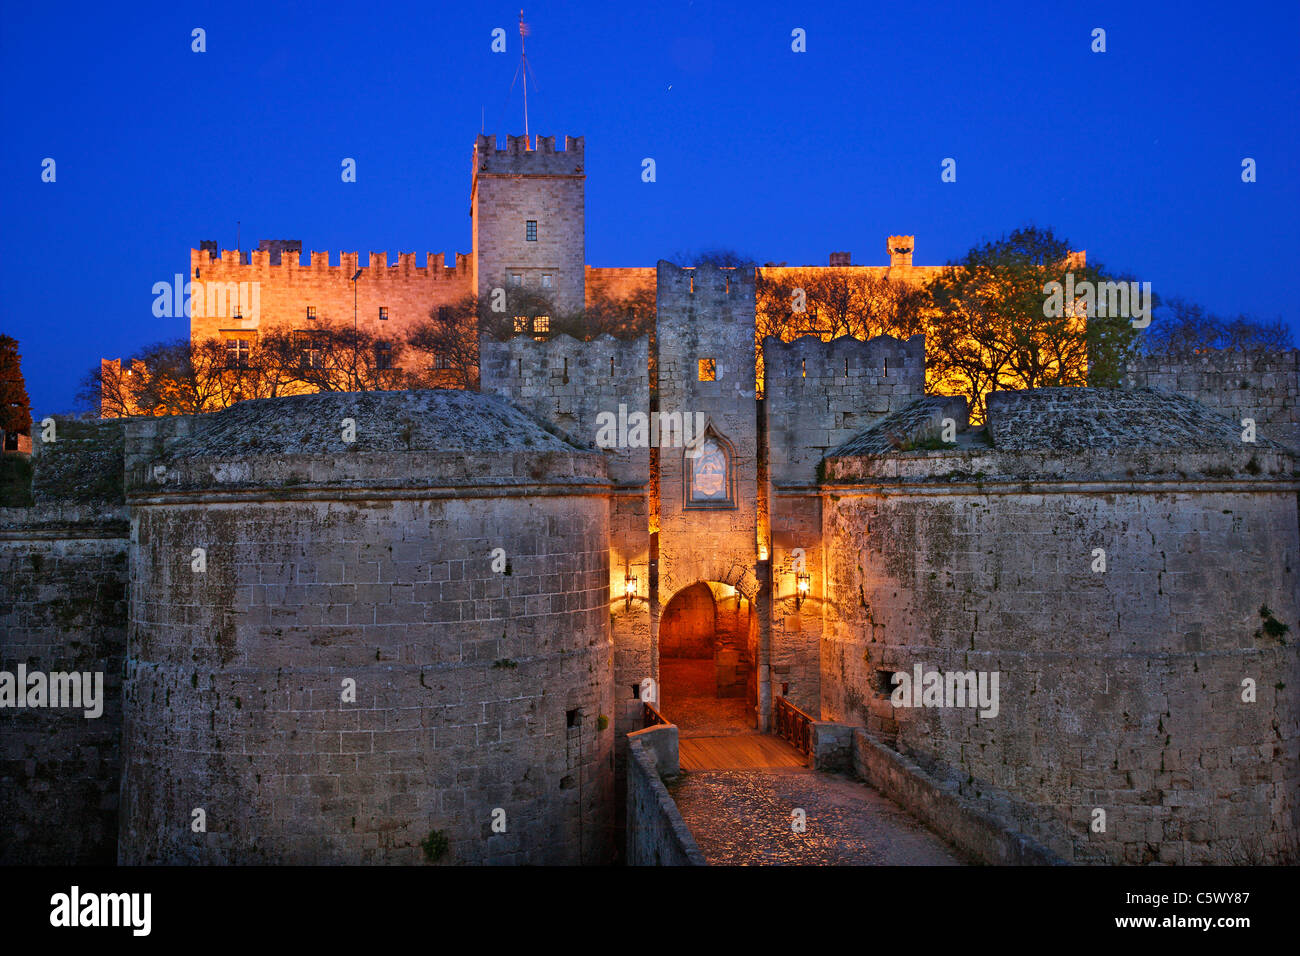 The palace of the Grand Master, behind the gate d' Amboise and the ditch of the Medieval town of Rhodes island, - Stock Image